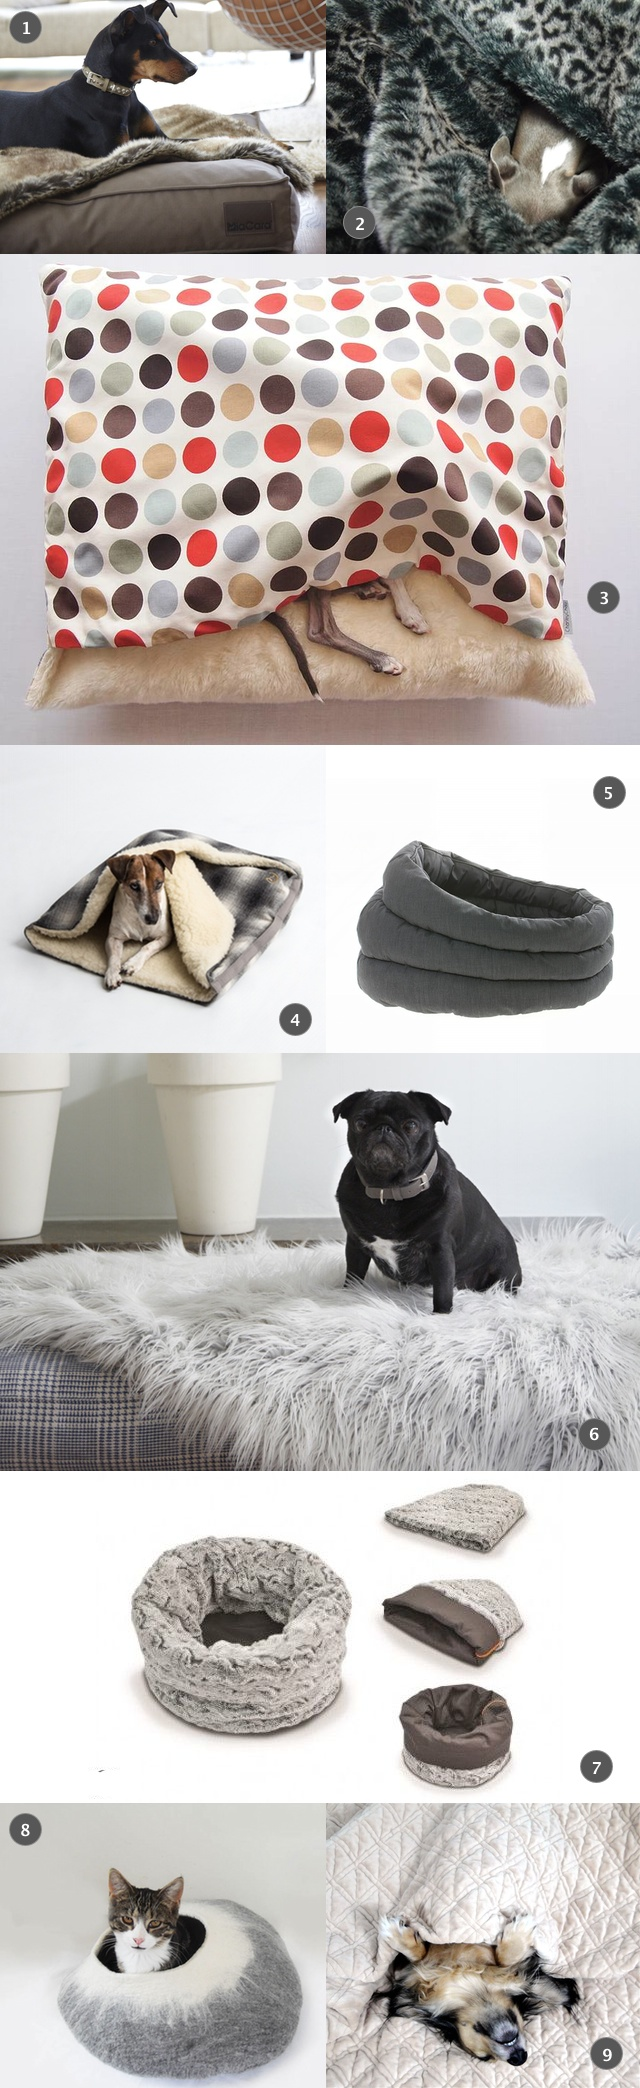 dog snuggle beds and faux fur blankets